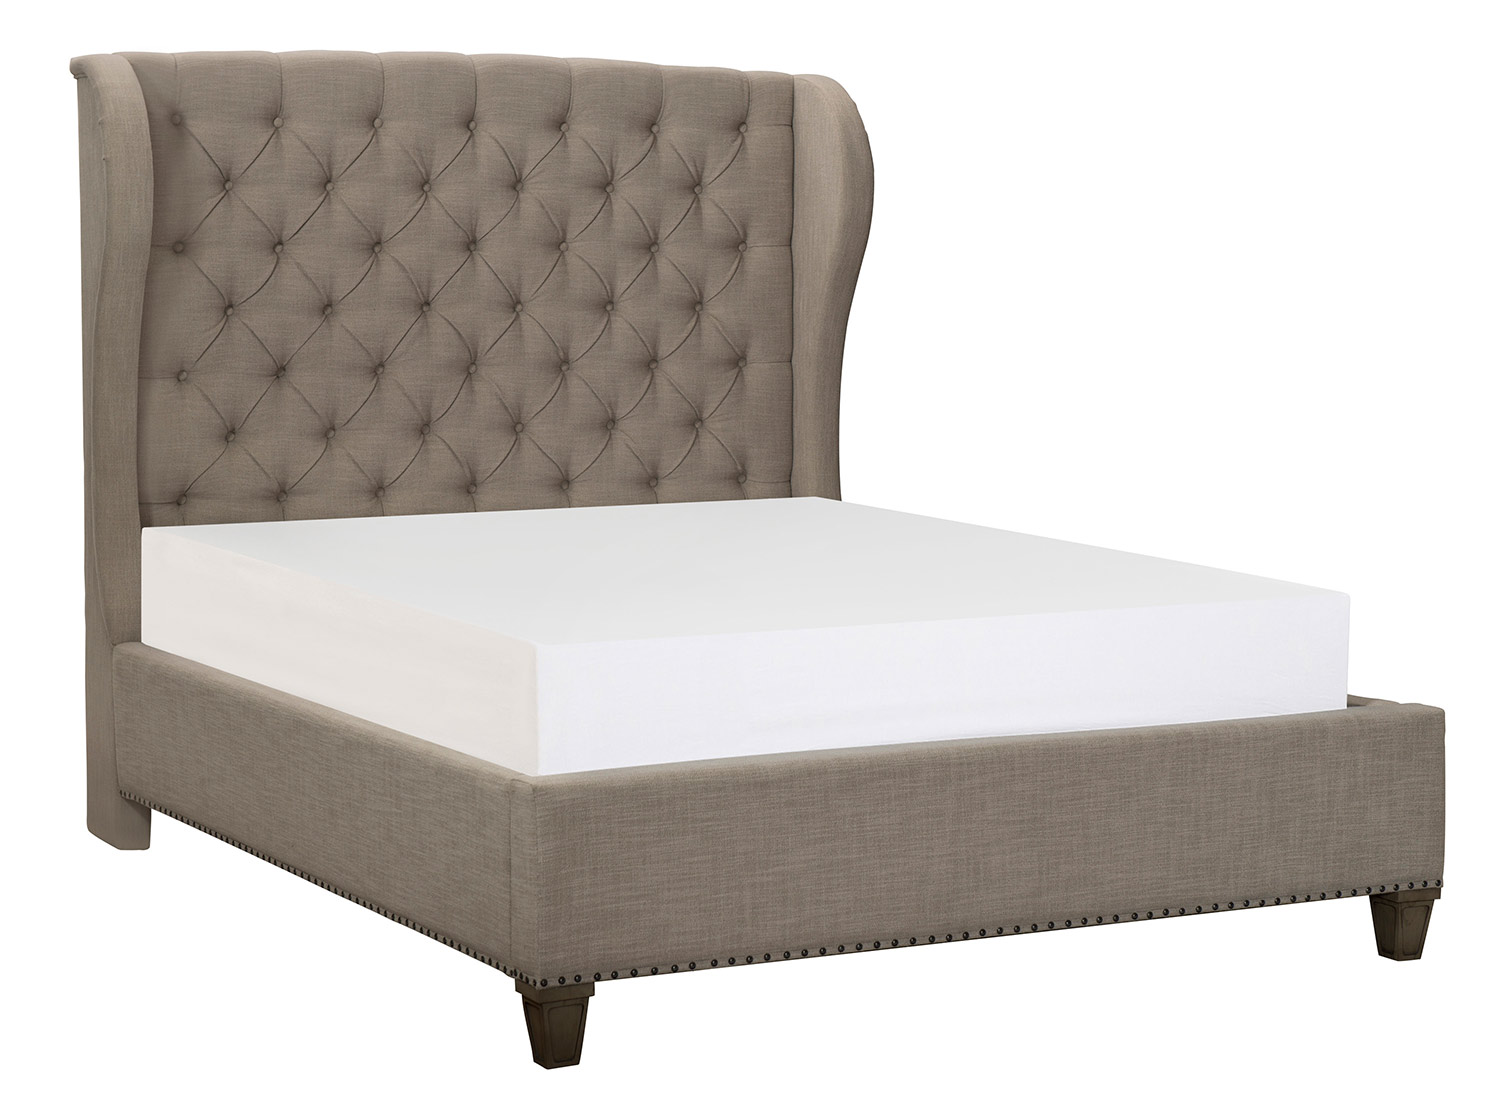 Homelegance Vermillion Upholstered Bed - Bisque Finish with Oak Veneer